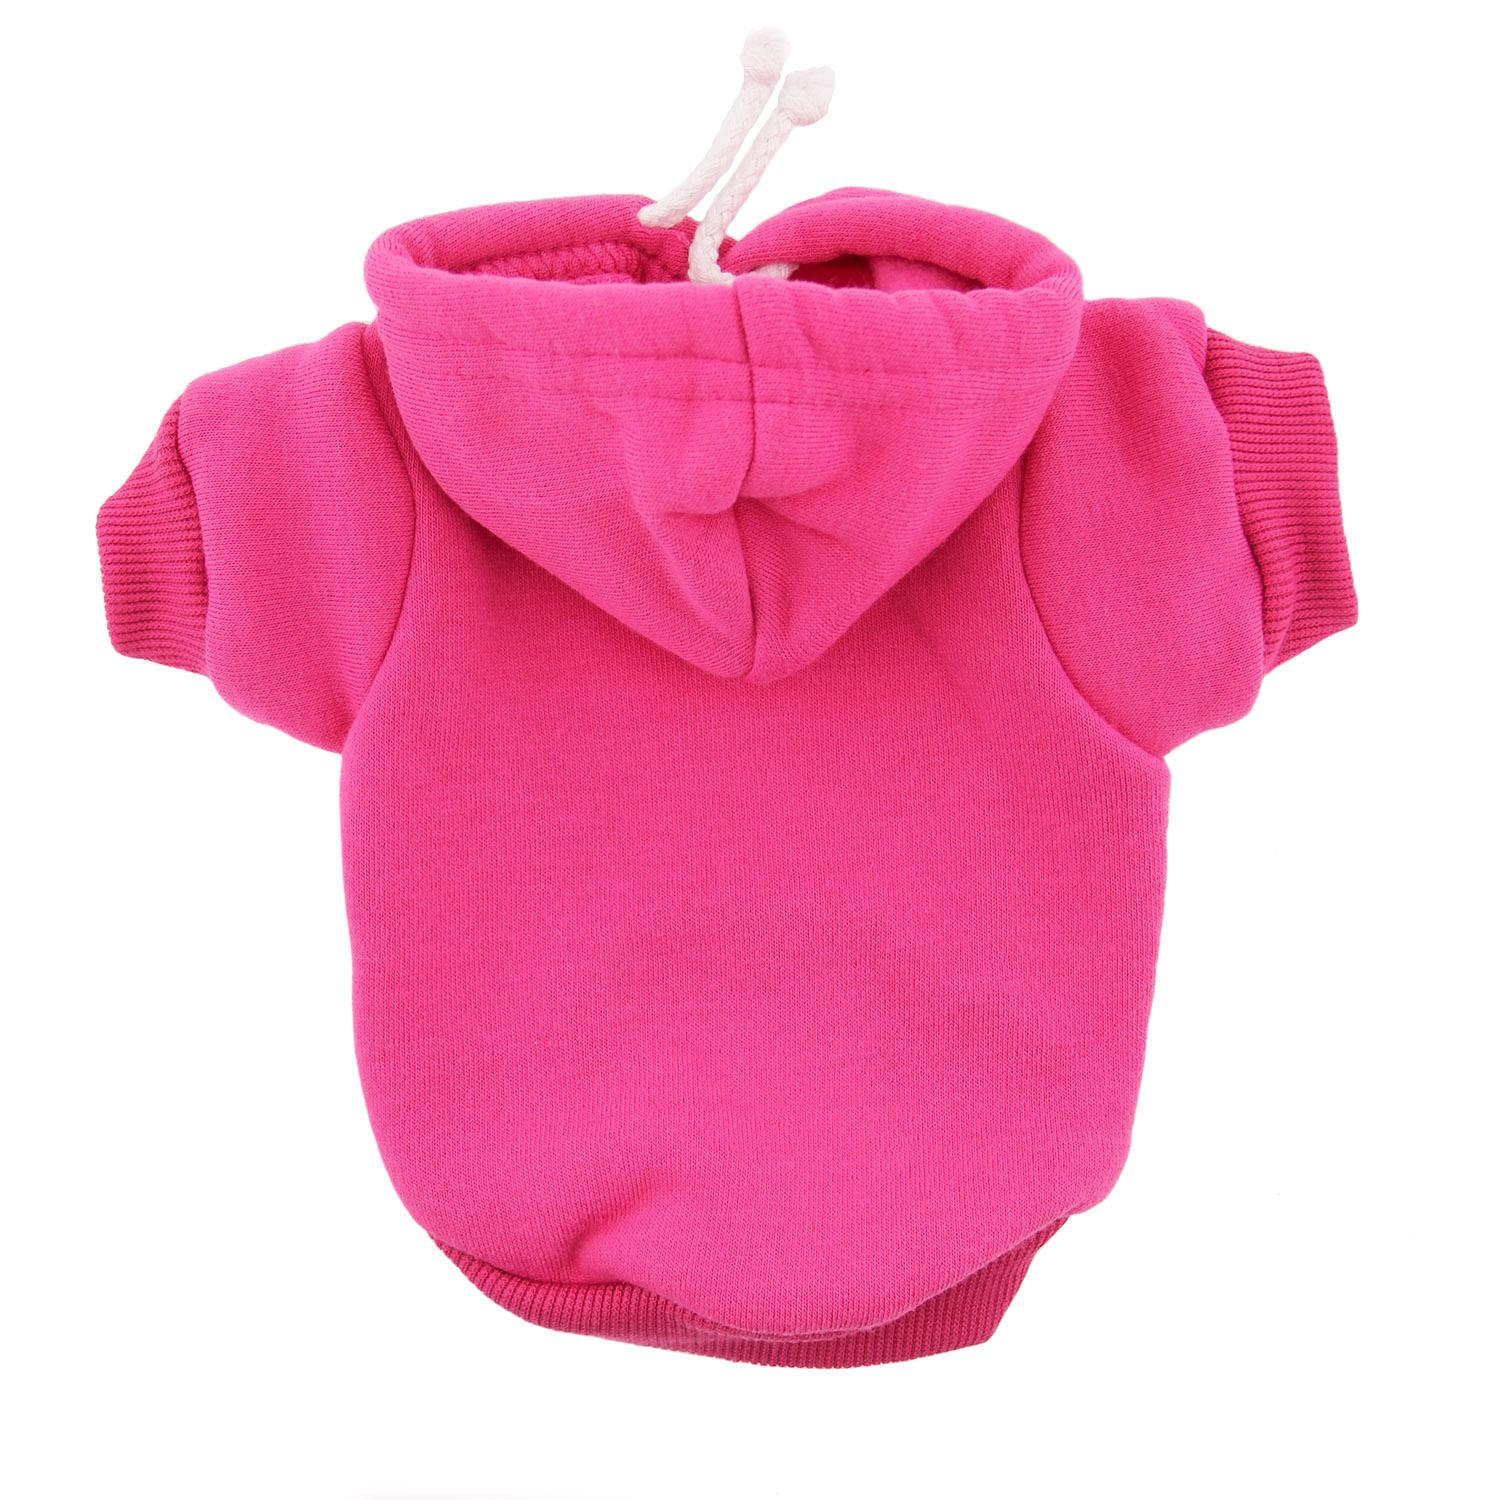 We have a variety of Bright Pink Sweatshirts & Hoodies and hoodies to fit your fashion needs. Tell the world how you feel or rock a funny saying with your outerwear. Bright Pink Sweatshirts & Hoodies and hoodies are great gifts for any occasion.